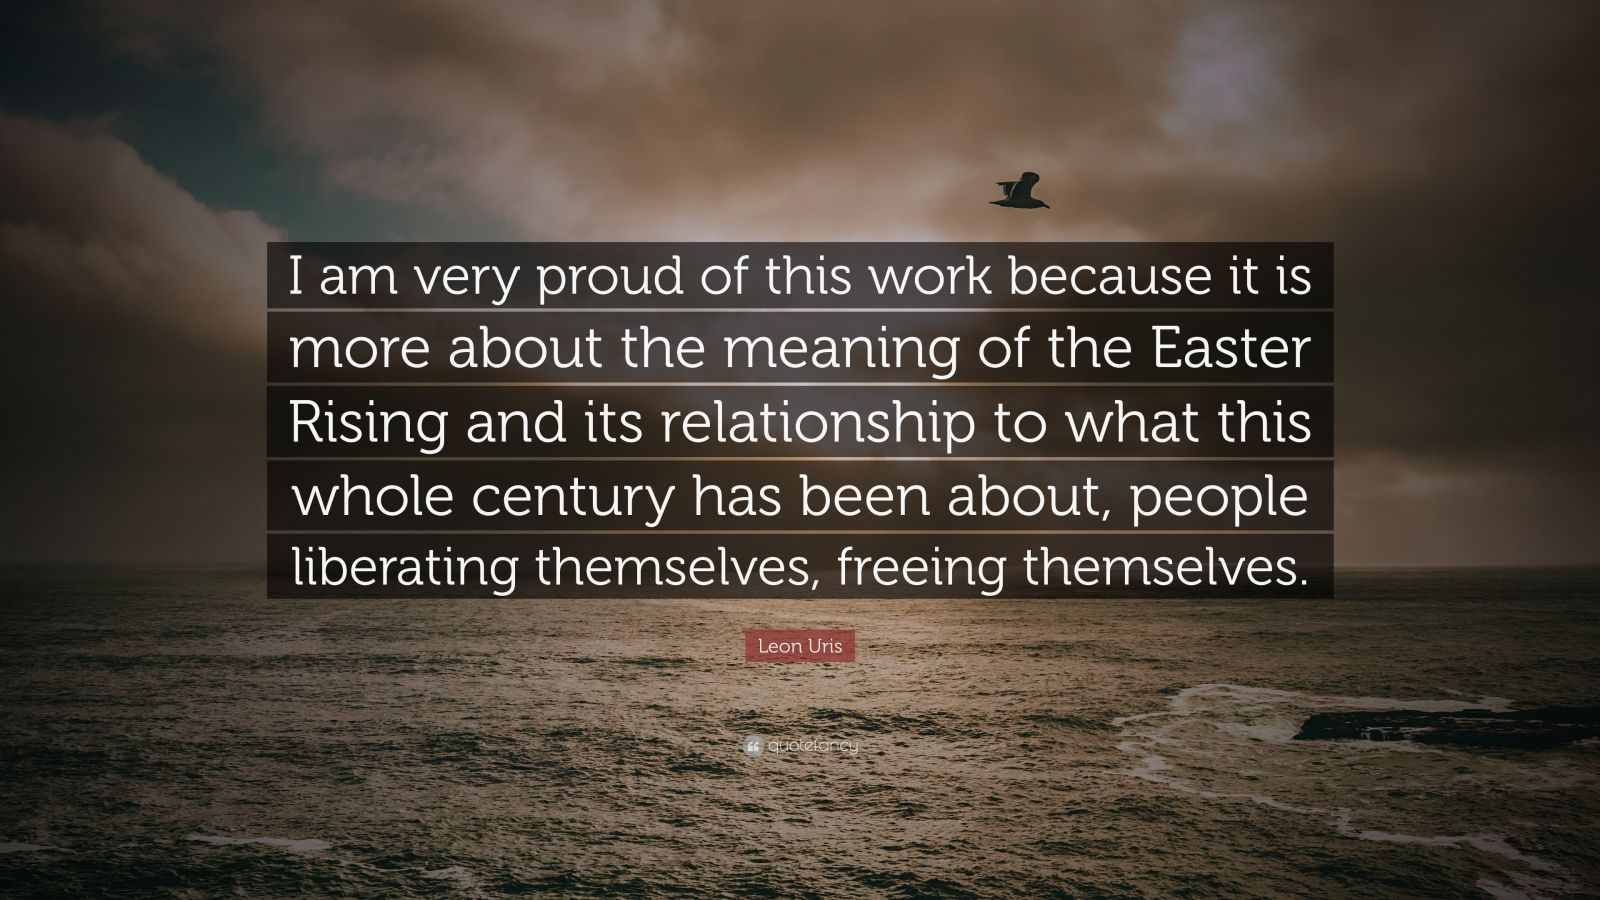 "Leon Uris Quote: ""I am very proud of this work because it is more about the meaning of the Easter Rising and its relationship to what this whole century has been about, people liberating themselves, freeing themselves."""